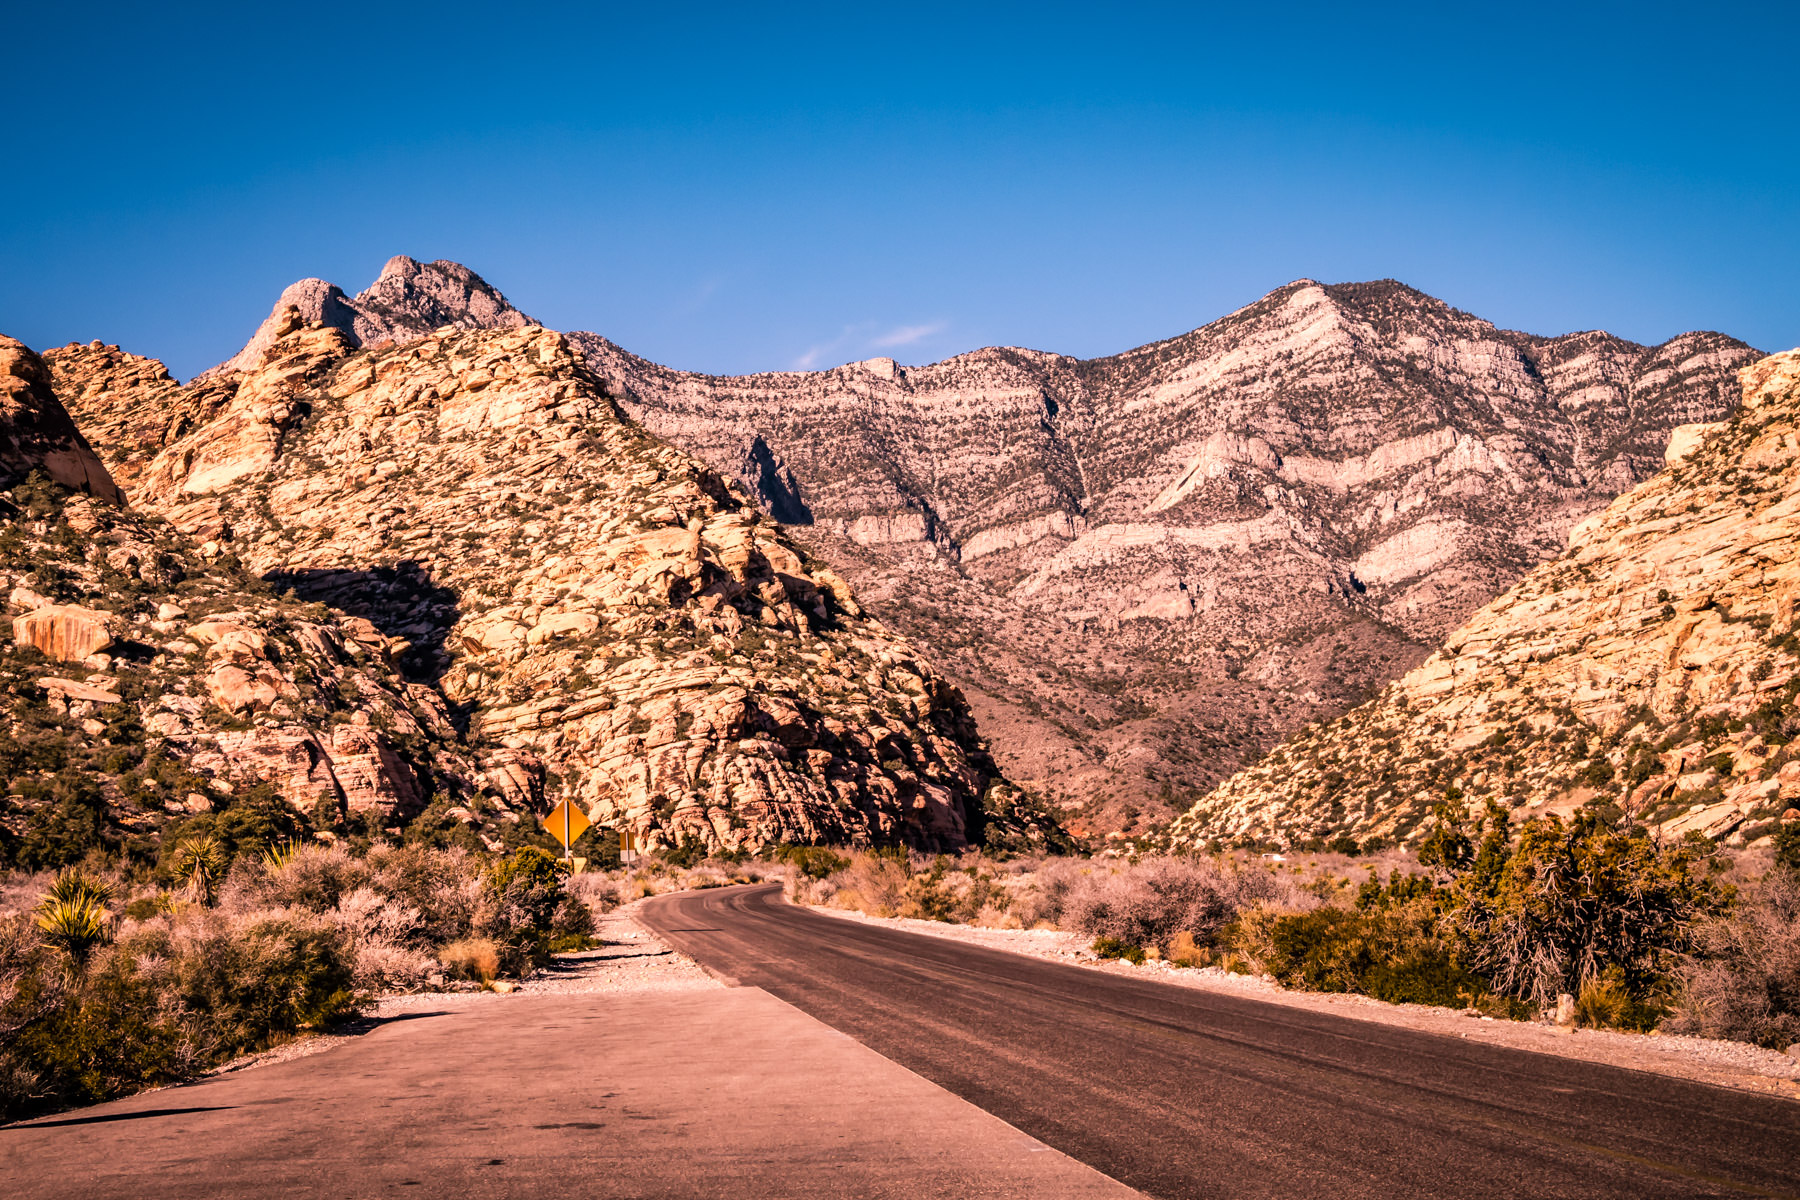 A road stretches through Nevada's Red Rock Canyon towards tall desert mountains.